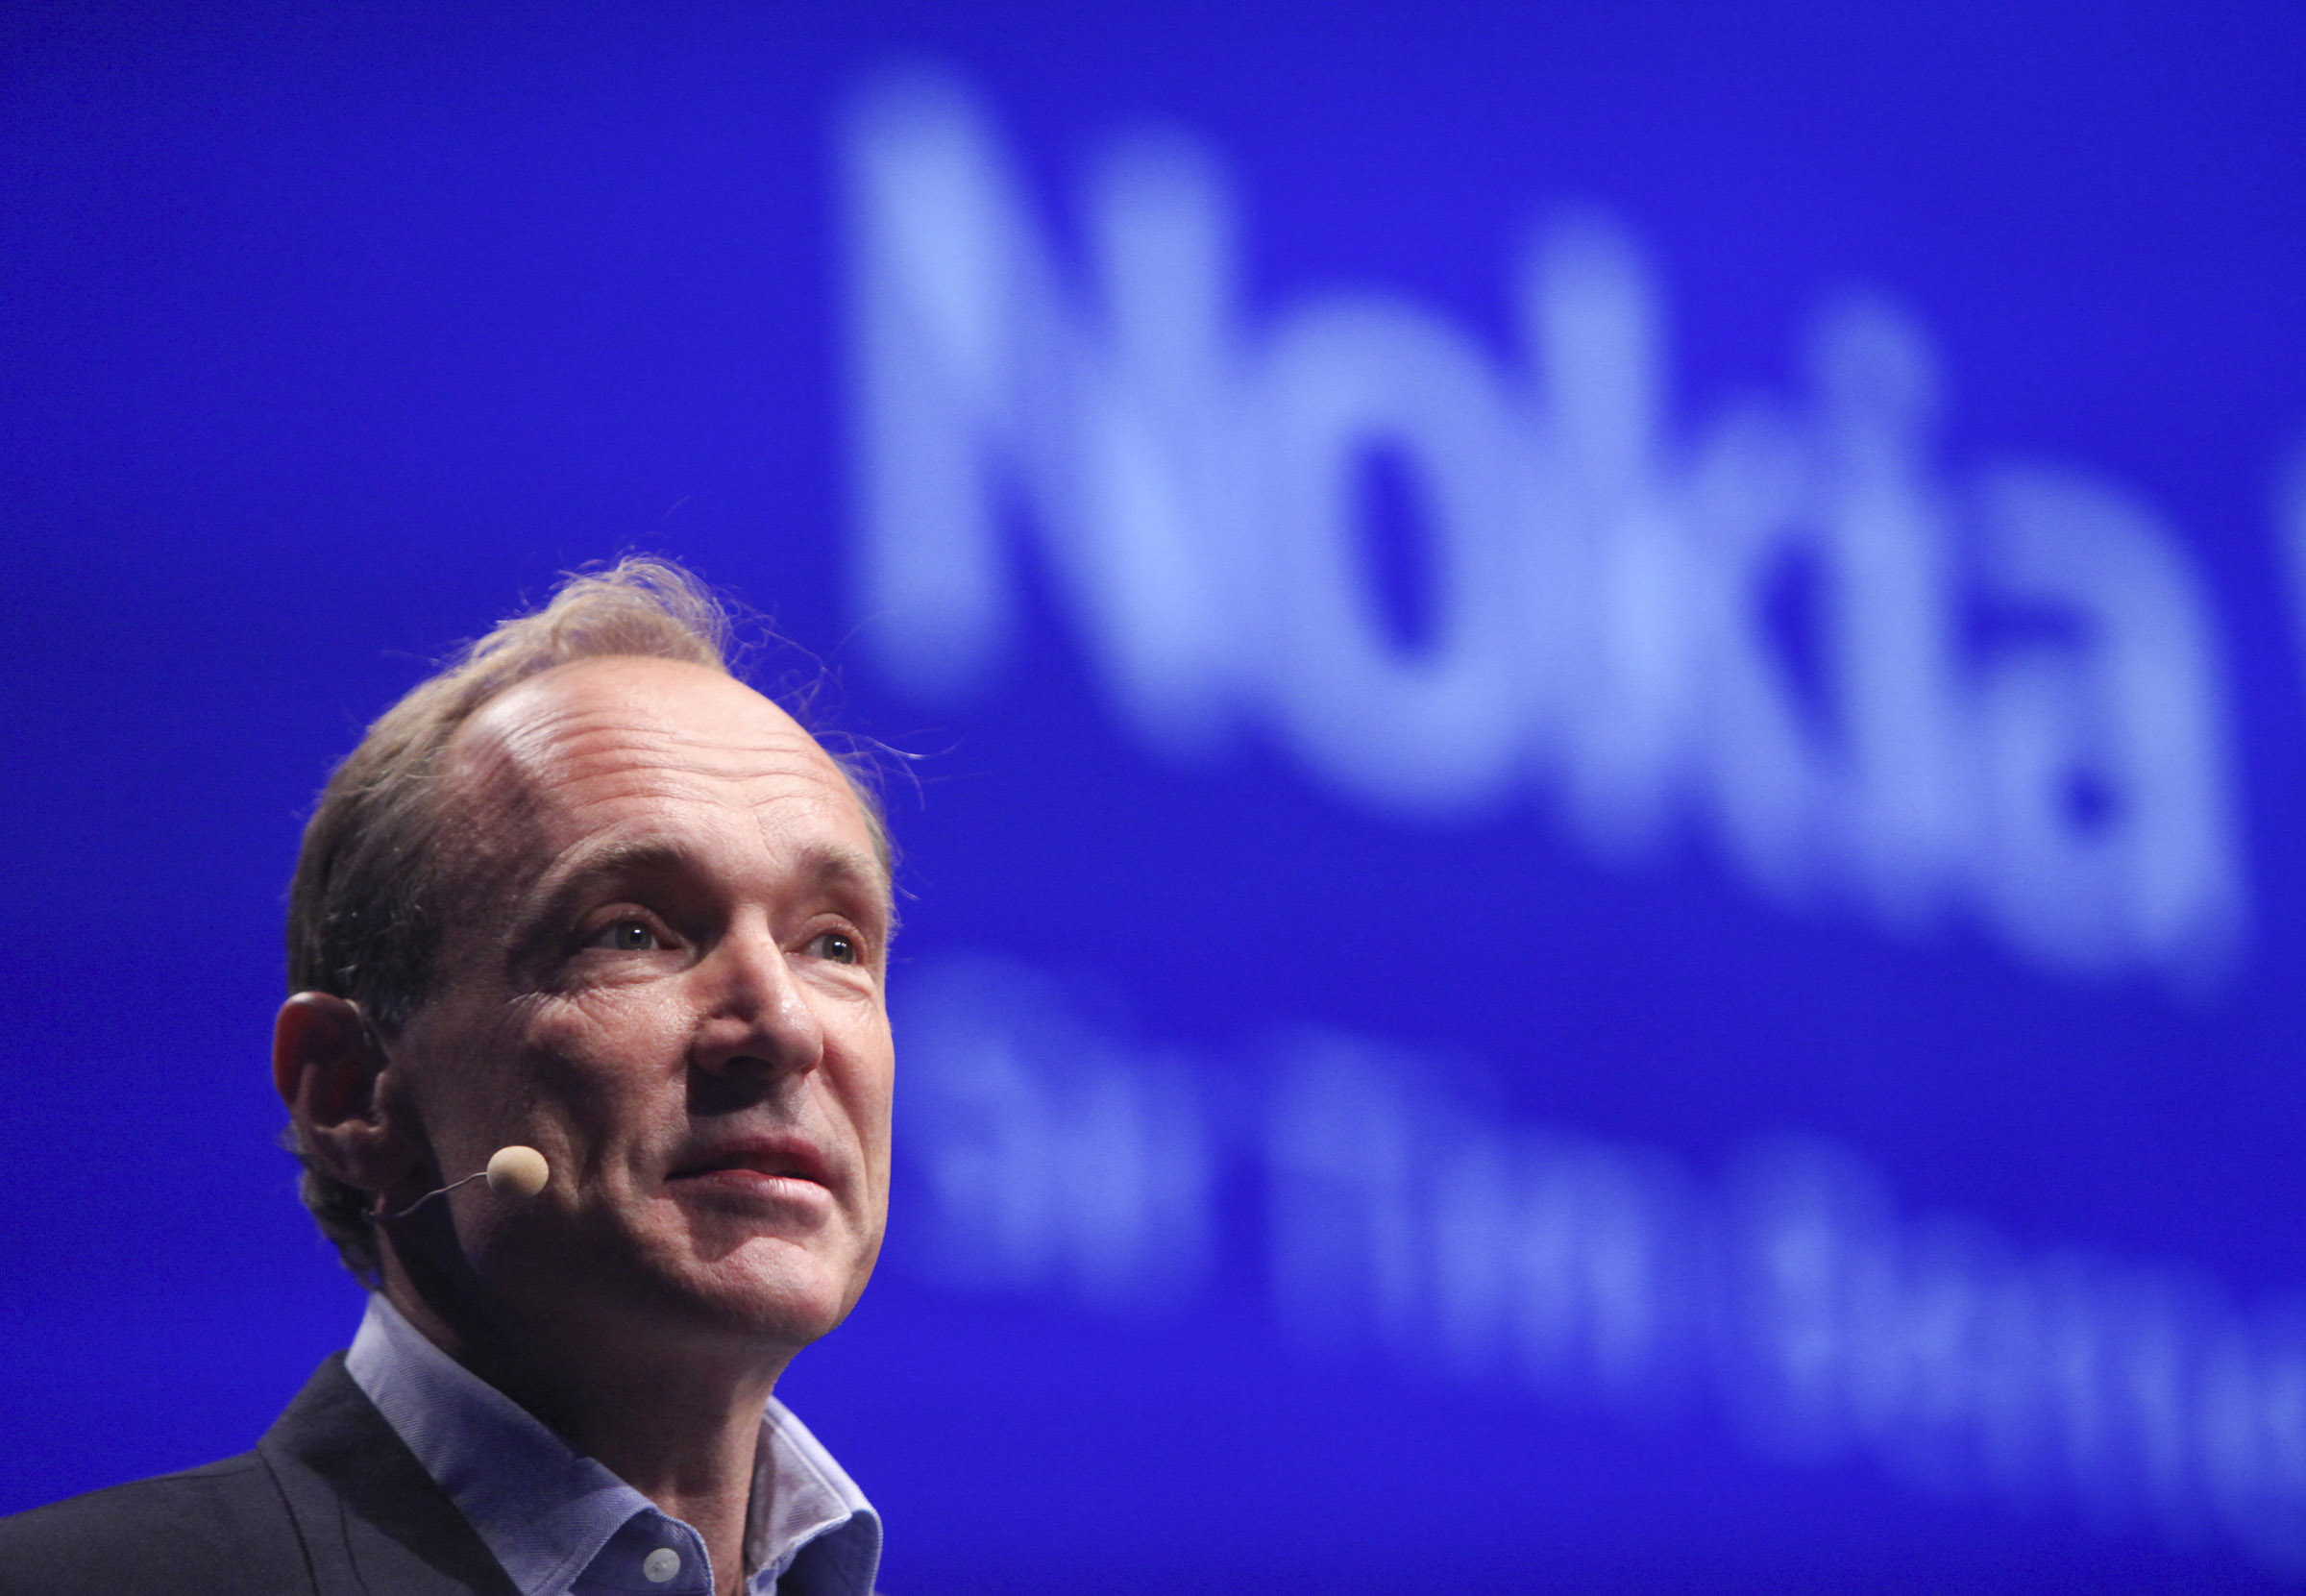 Tim Berners-Lee, creator of the World Wide Web, on stage at Nokia World even in 2010